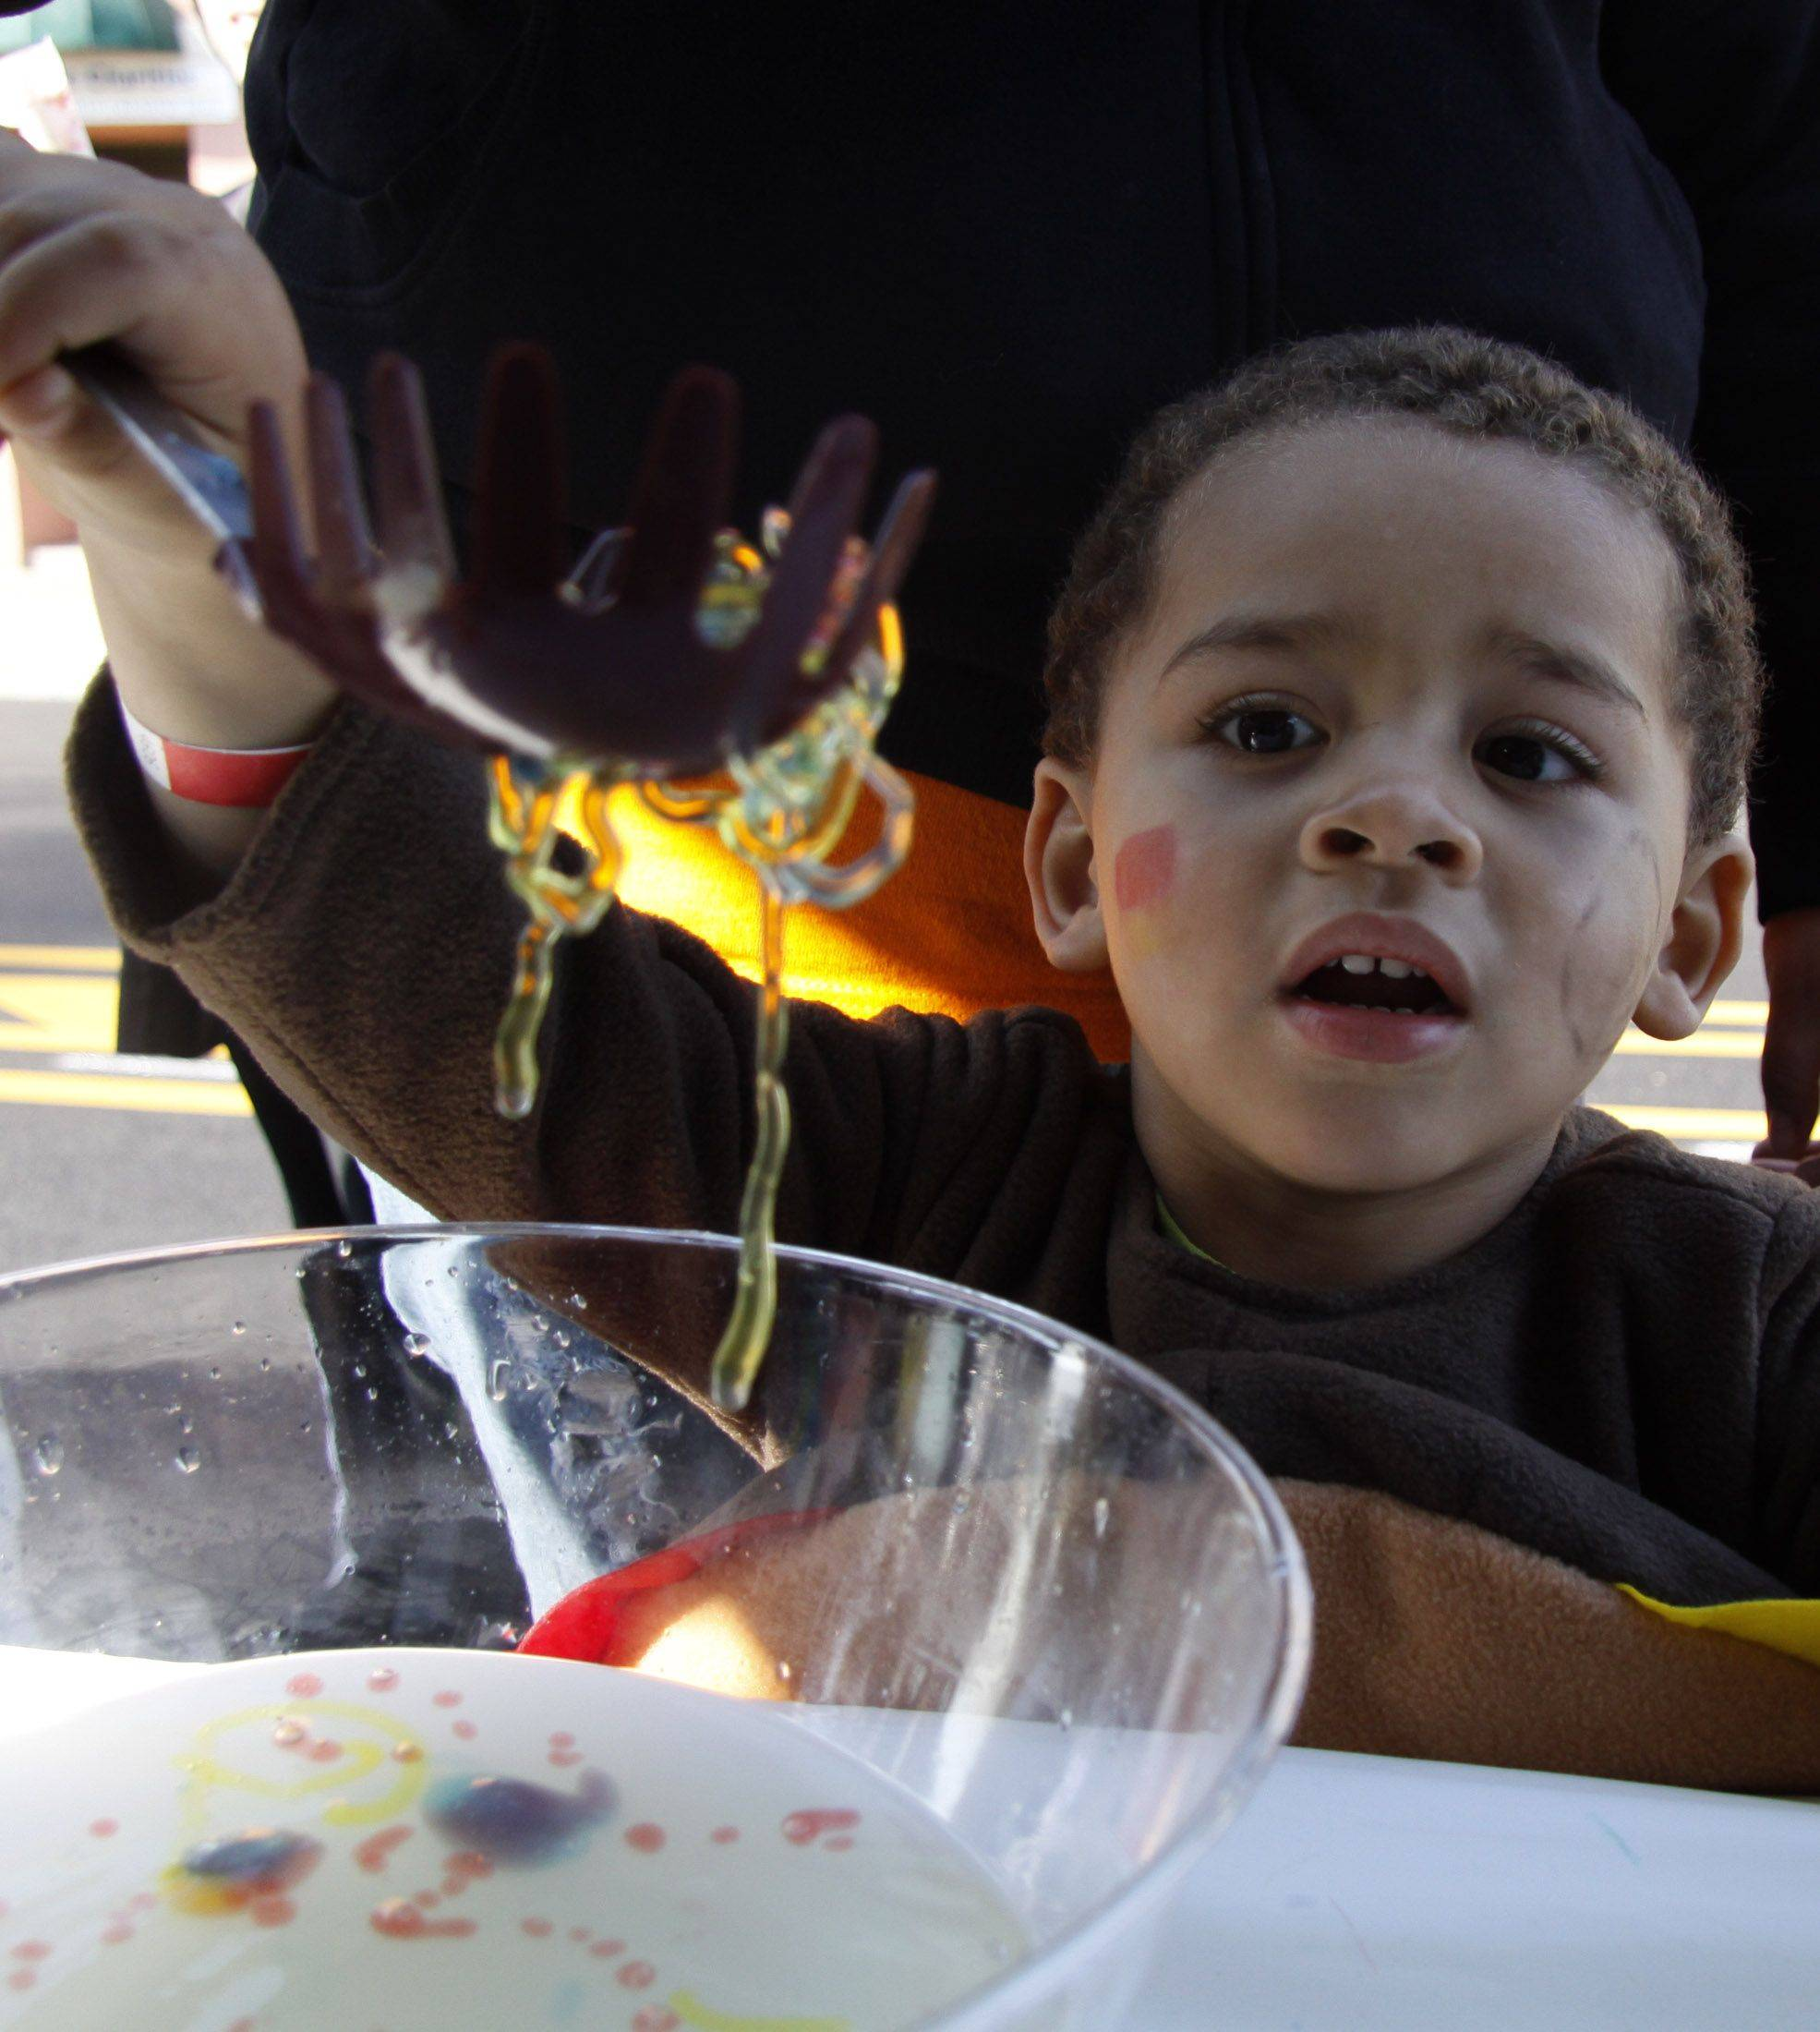 Jayden Burger, 3, of Elmhurst is amazed as he makes gooey worms at the Glenbard East High School booth at the Spooktacular Fall Festival in Lombard Saturday. The worms are a mixture of sugar from seaweed and calcium salt that causes the liquid to turn into a solid. The Key Club and National Honor Society volunteered to run the booth and help introduce science to the children.